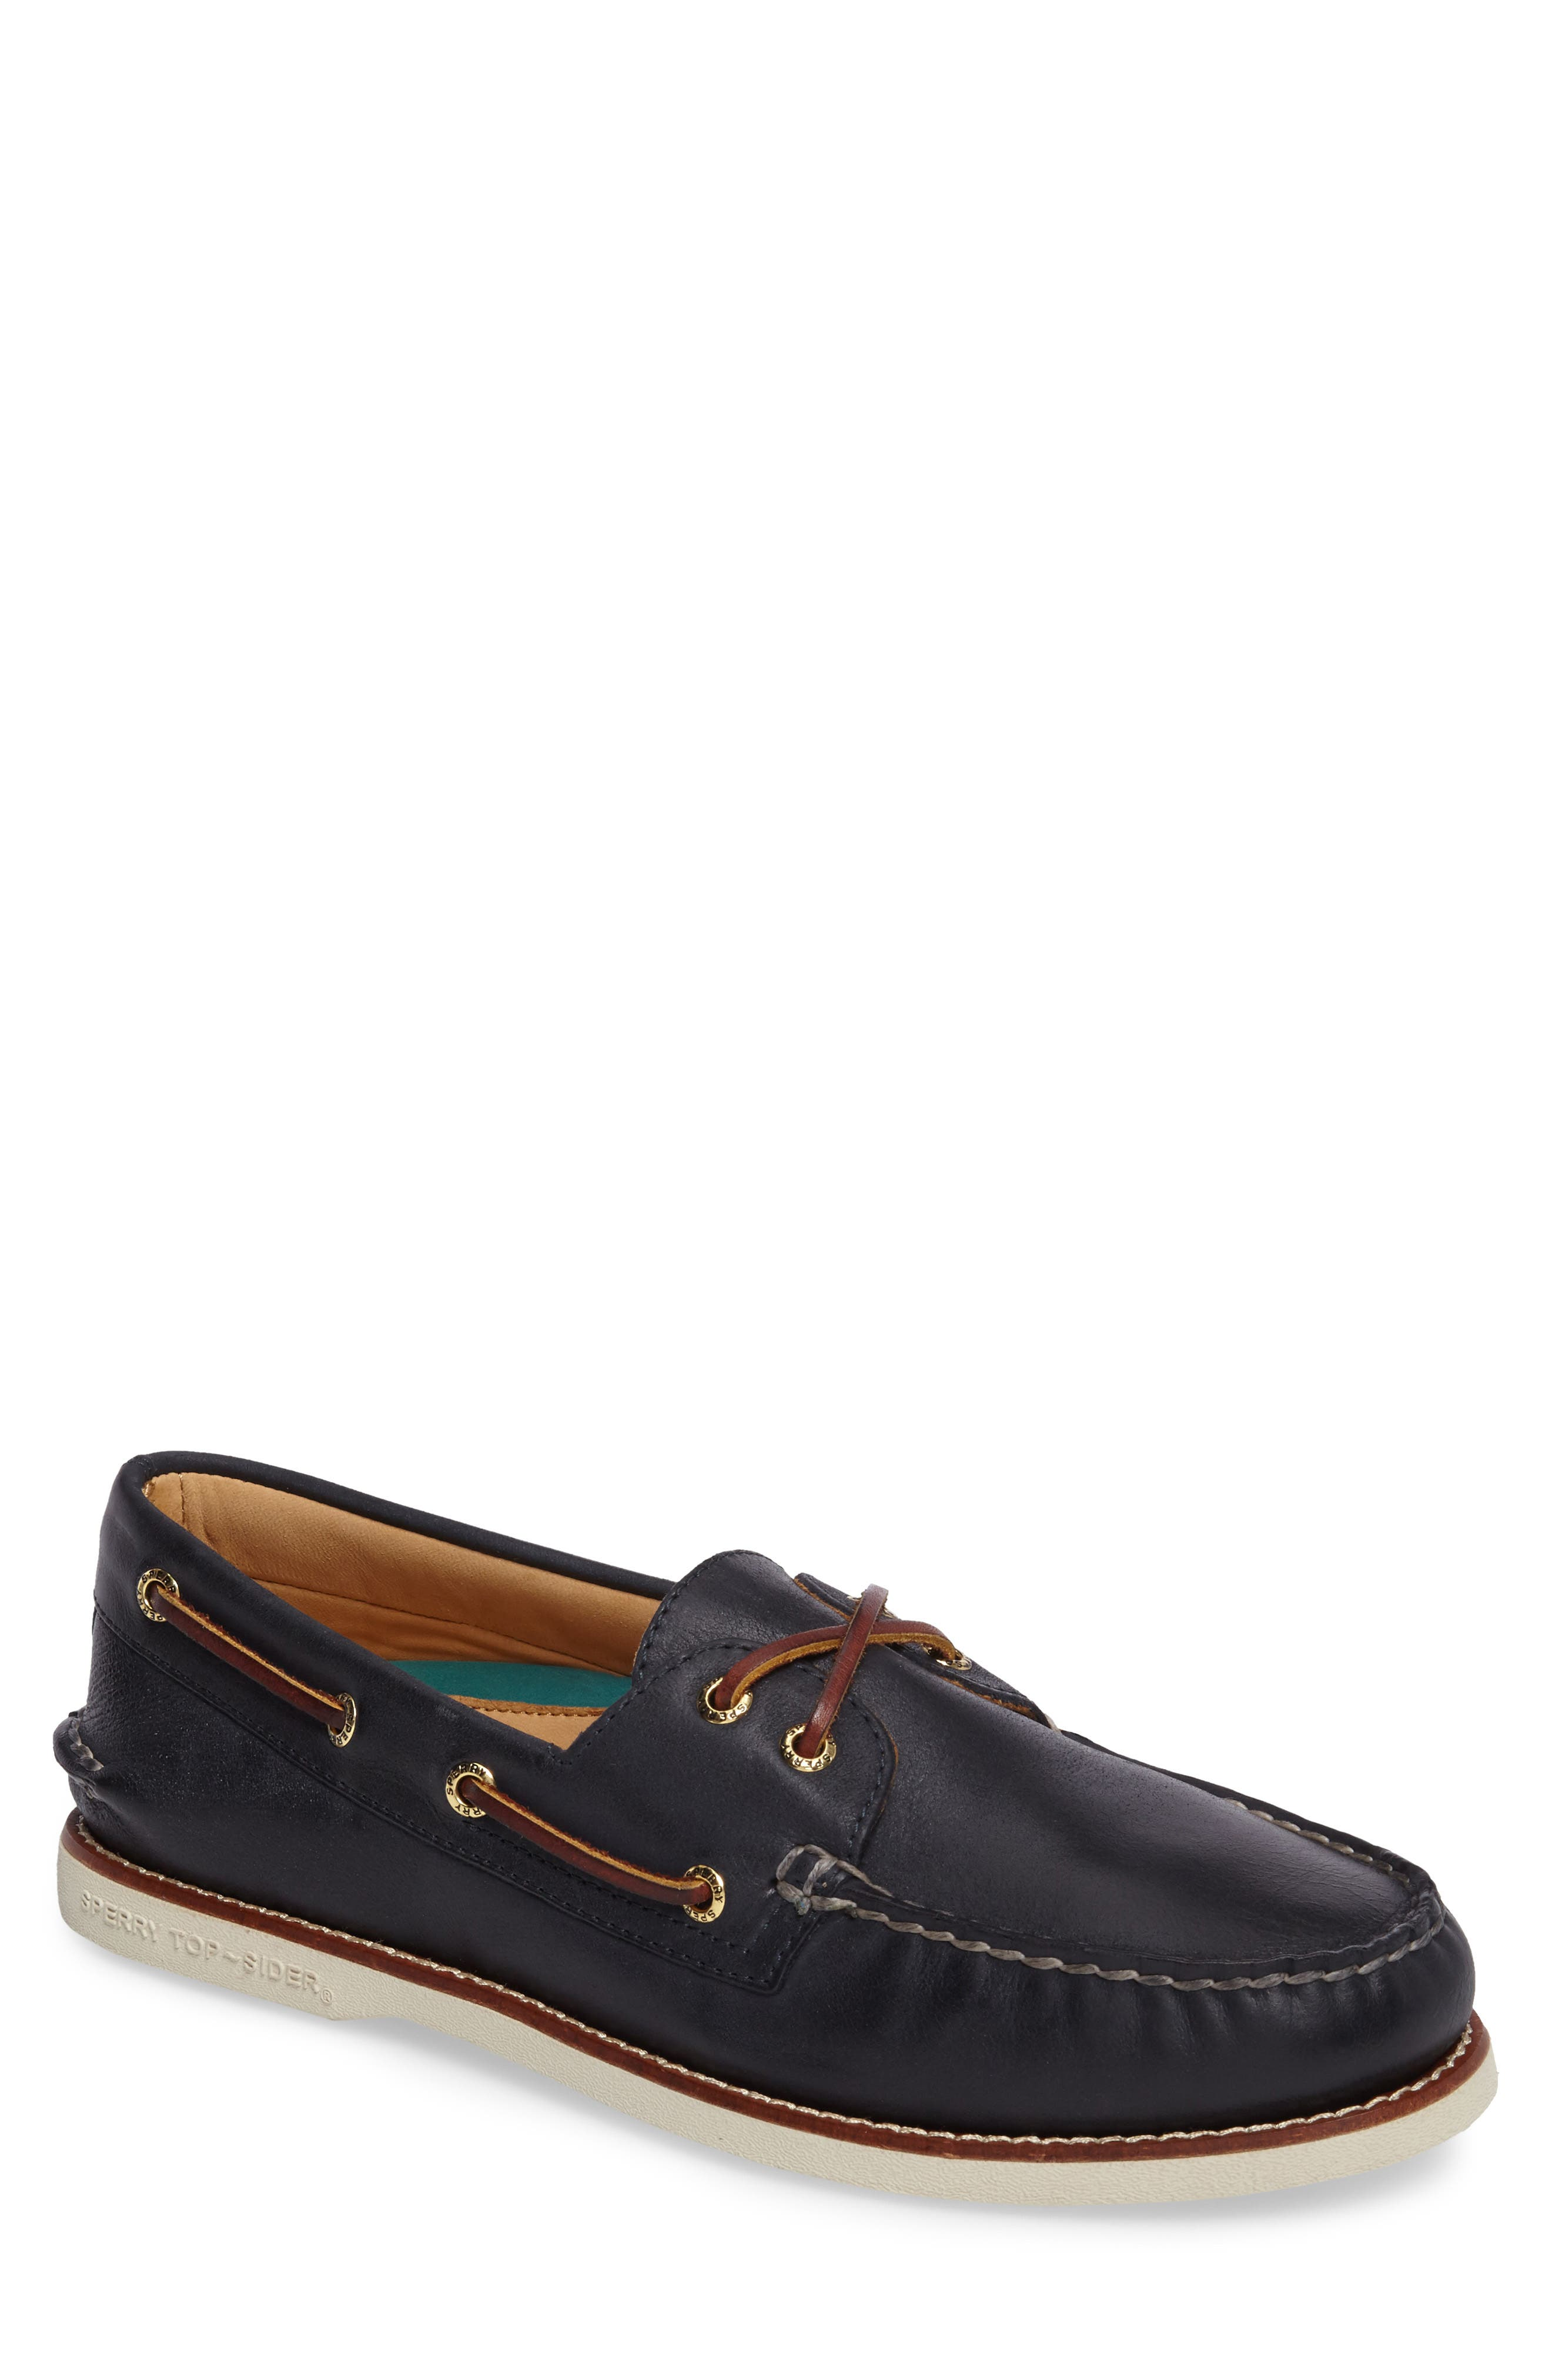 'Gold Cup - Authentic Original' Boat Shoe,                             Main thumbnail 1, color,                             NAVY LEATHER